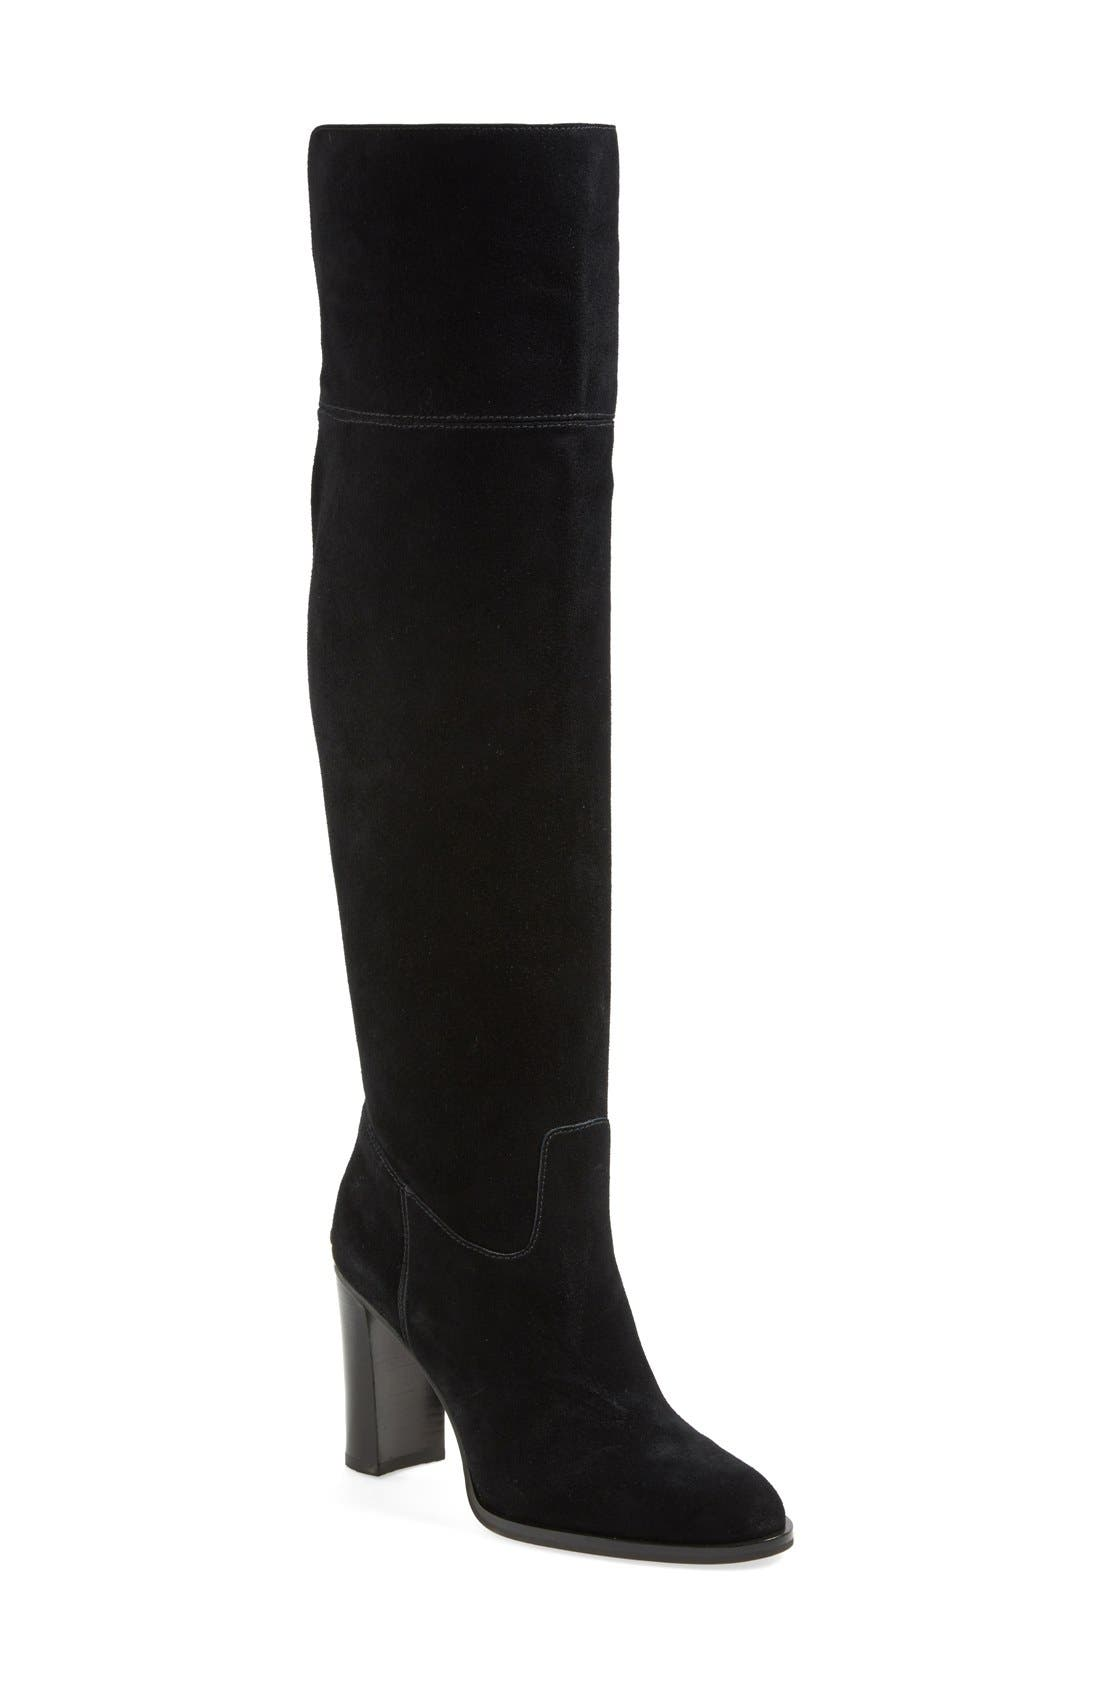 'Regina' Over the Knee Boot,                             Main thumbnail 1, color,                             001